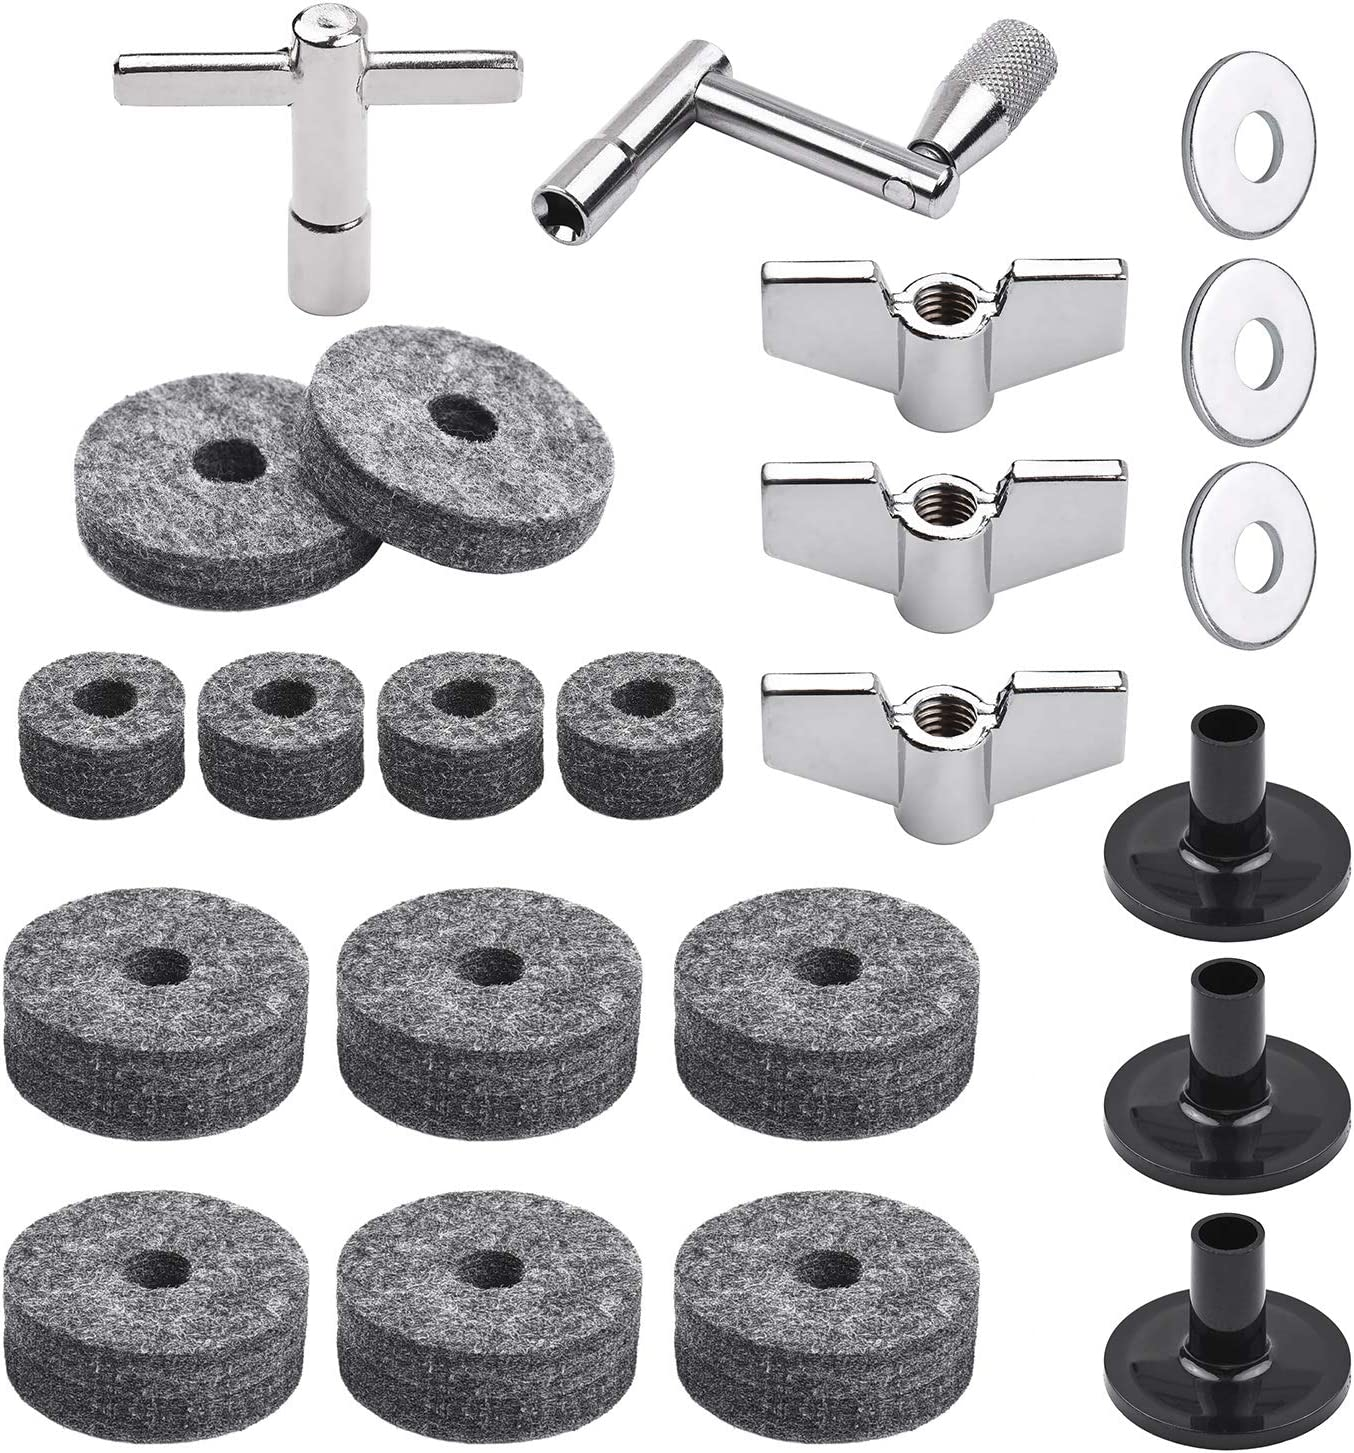 23pcs Cymbal Max 47% OFF Replacement Accessories Parts Stan with Drum Ultra-Cheap Deals